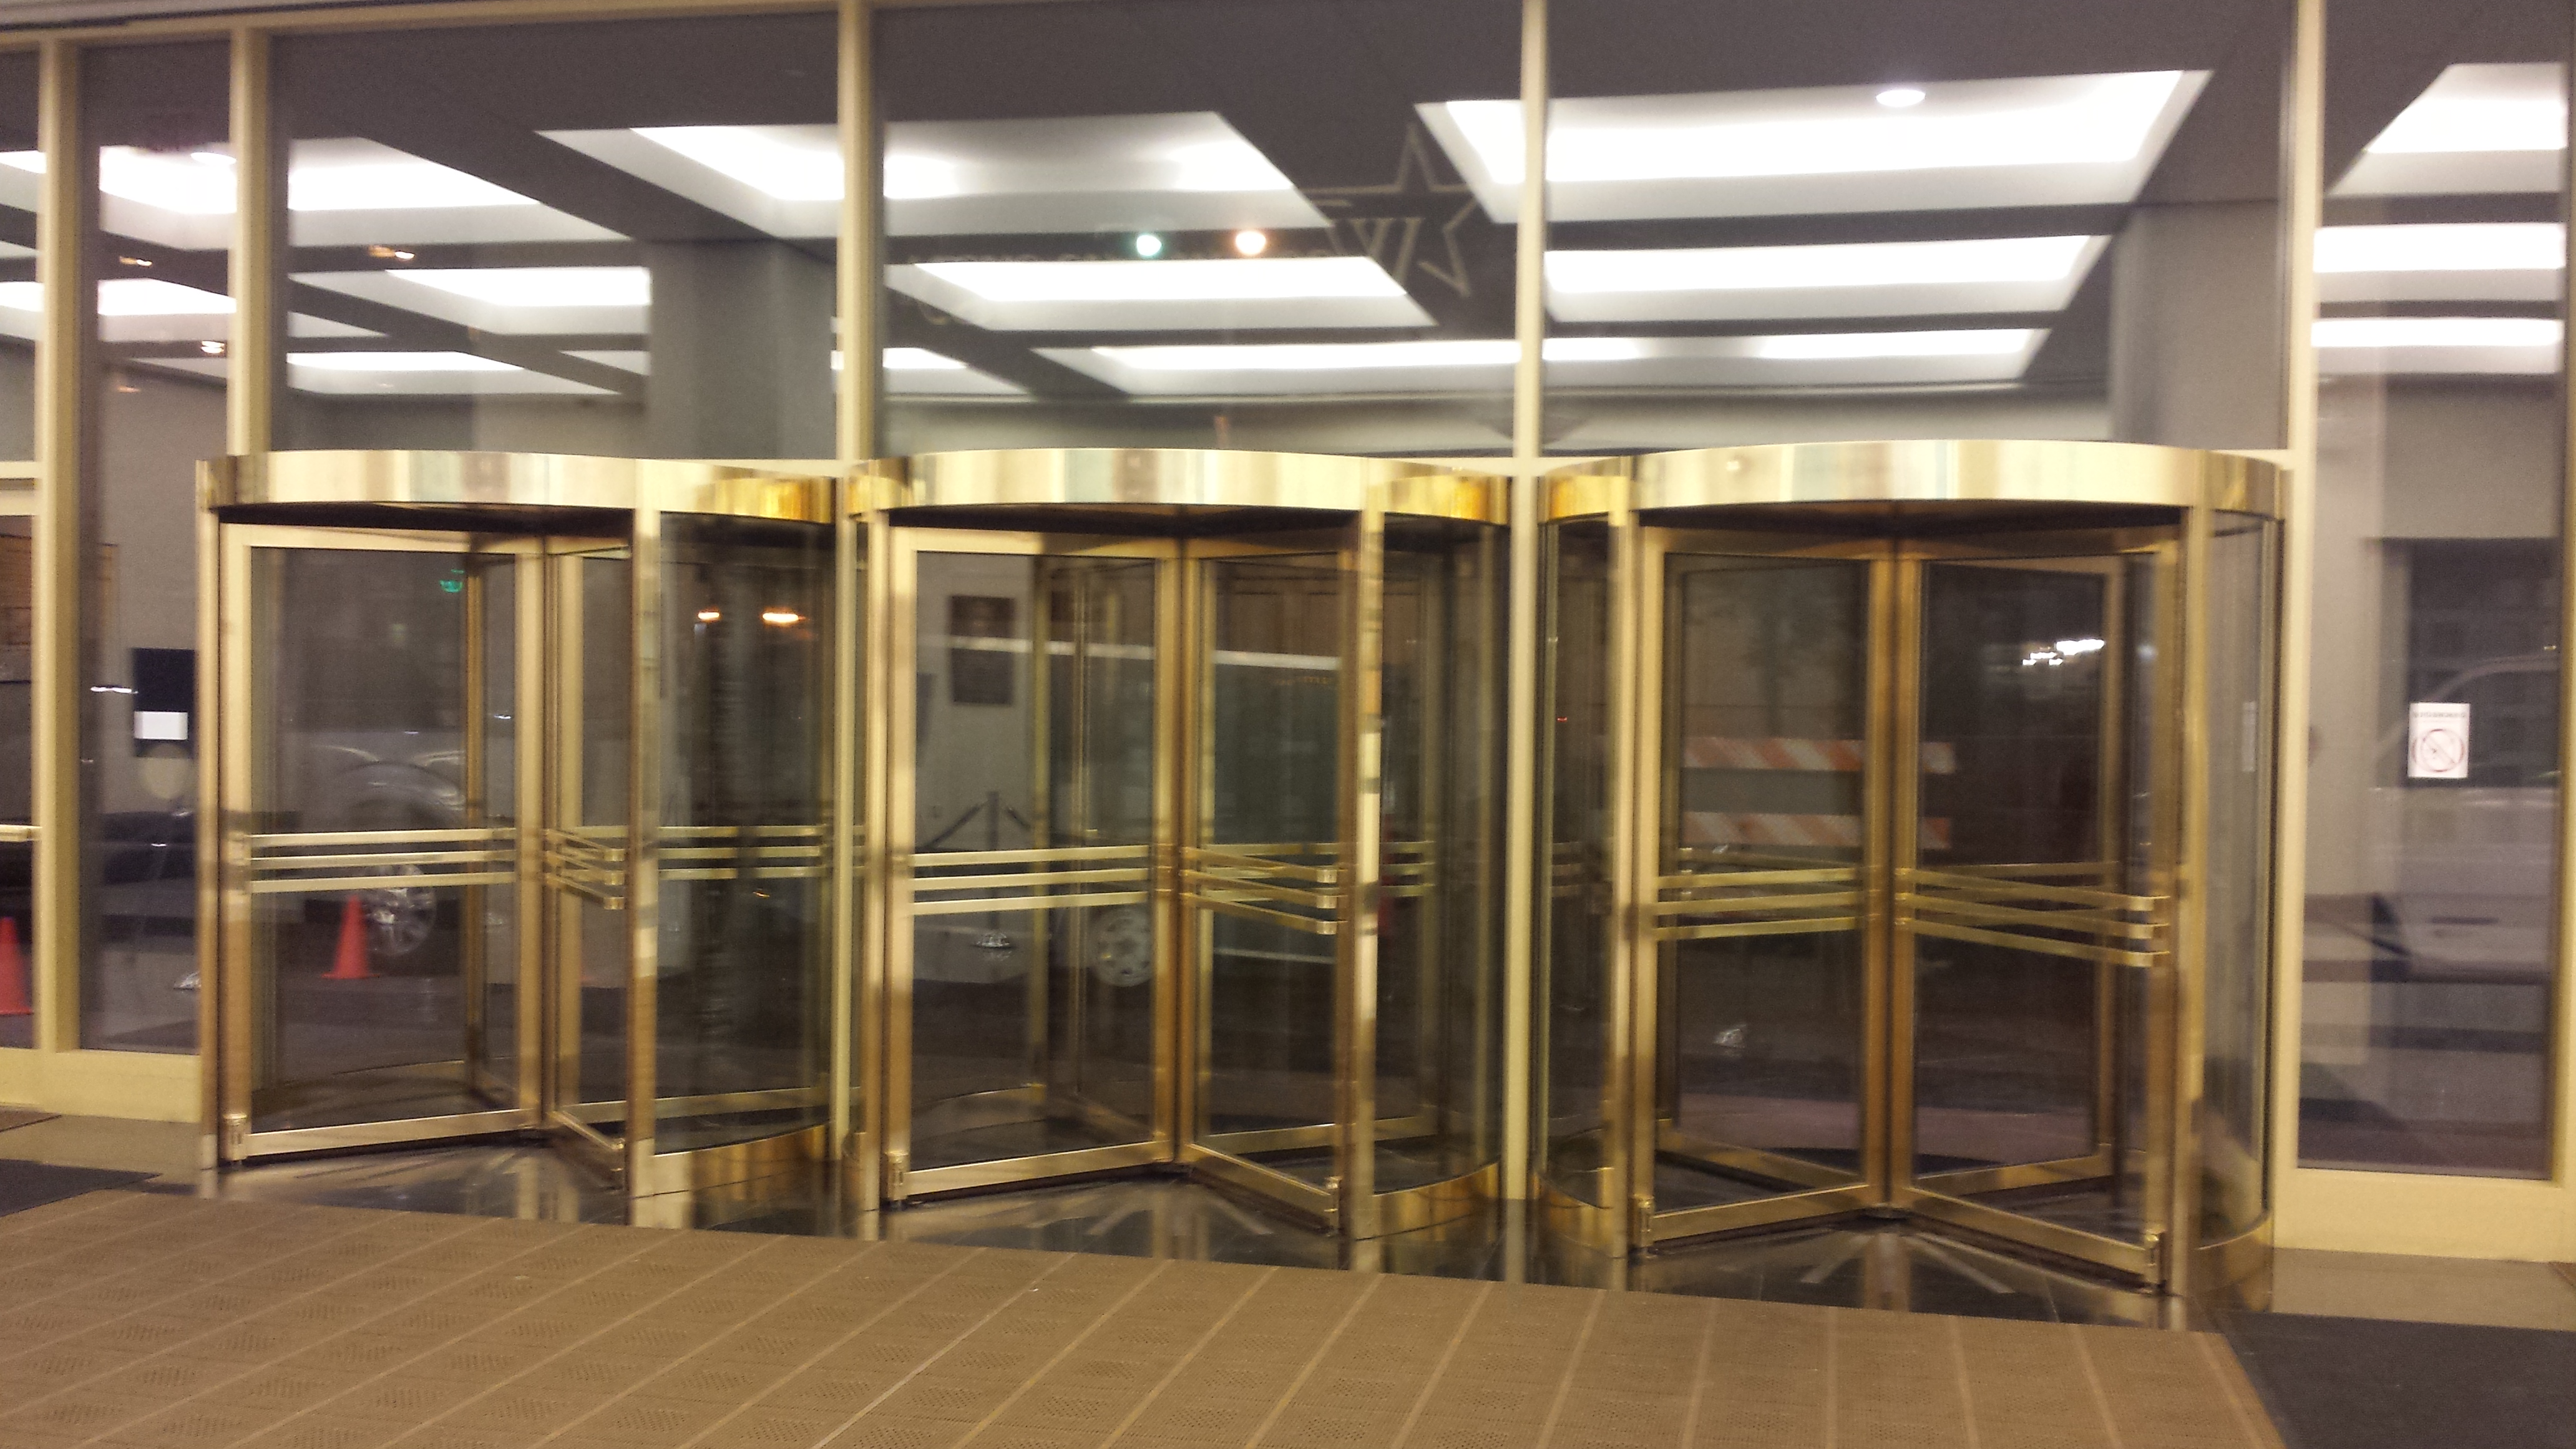 Interior lobby doors at Westar Energy in Topeka, refinished by KC Restoration.